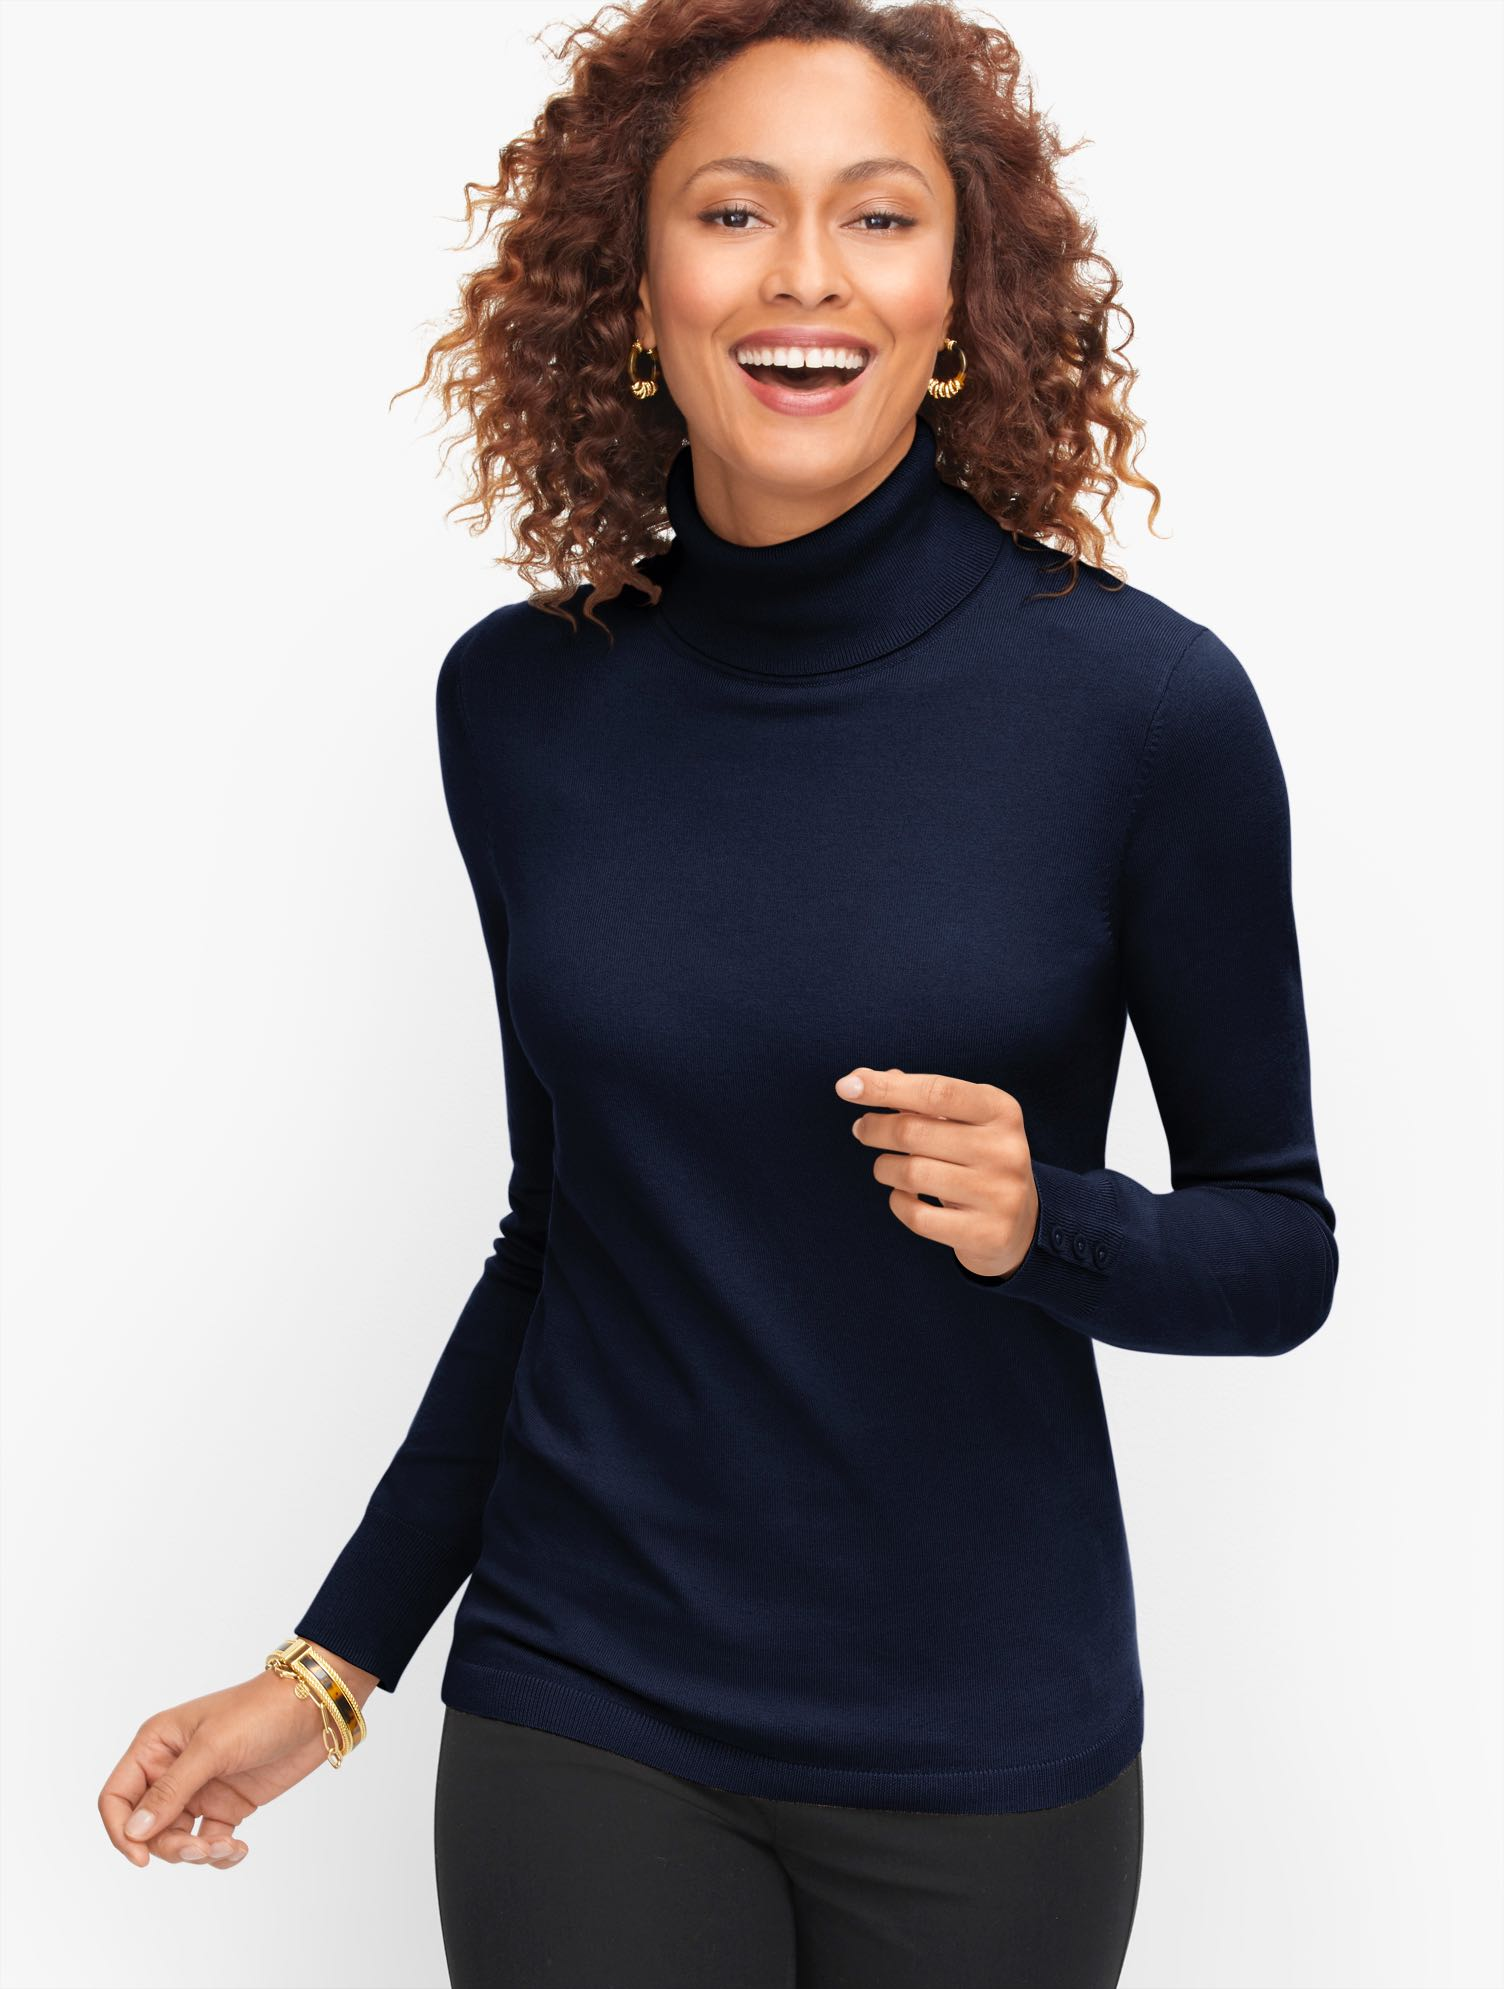 Your favorite turtleneck sweater returns. In a fresh assortment of colors to add to your collection. (There\\\'s no such thing as too many.) Features Sleeve length: LongNeckline: TurtleHits: At hipClosure: PulloverImported Fit: Misses: 25 1/2 inches; Petite: 24 1/2 inches; Plus: 27 inches Material: 58% Cotton, 23% Modal, 16% Nylon, 3% Lycra Care: Machine Wash; Reshape, lay flat to dry Perfect Turtleneck Sweater - Blue - 3X Talbots